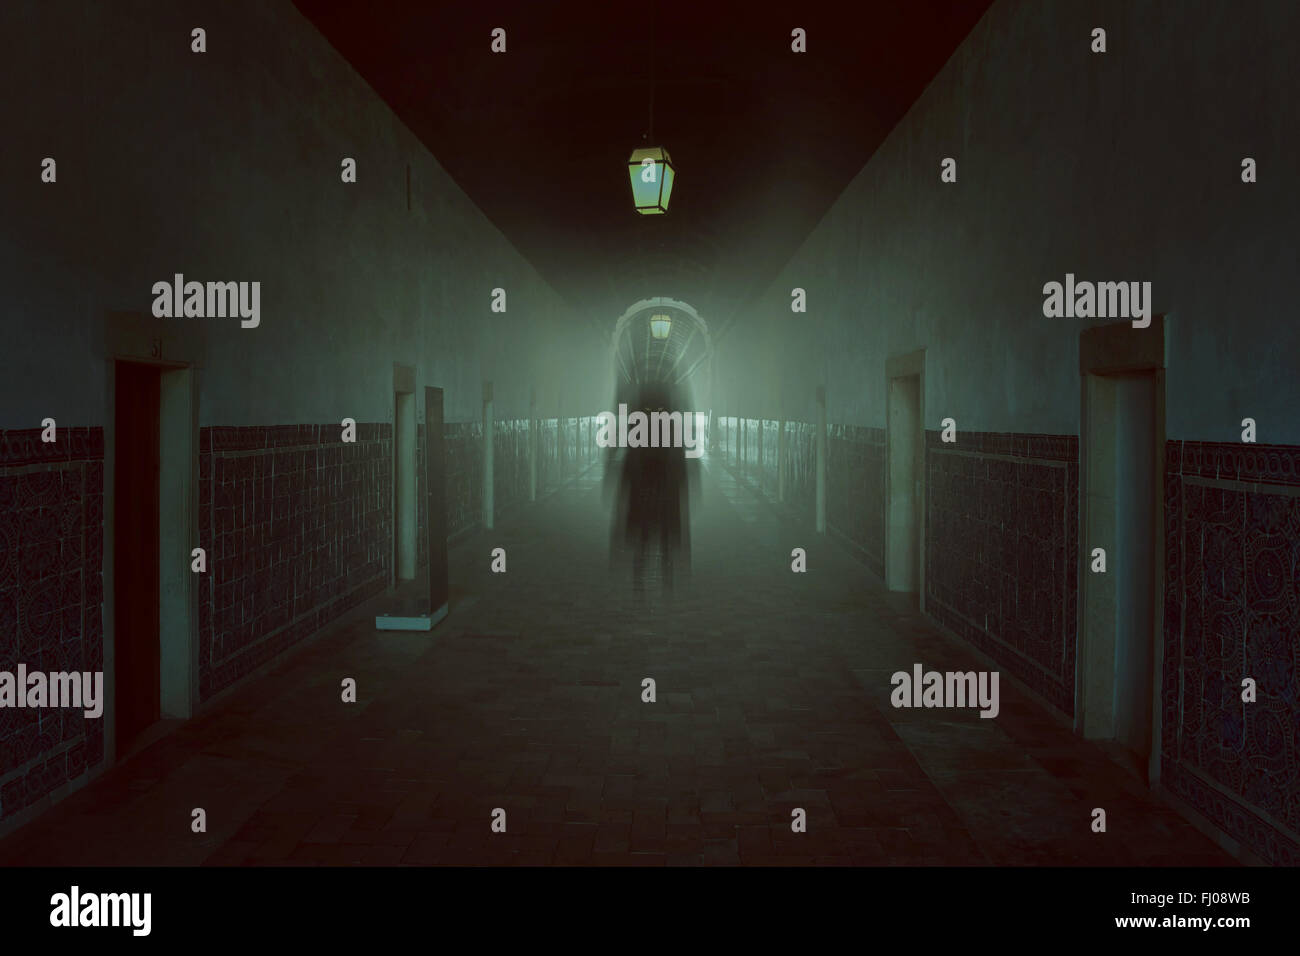 Male oscuro ombra in haunted edificio . Halloween e i toni horror Immagini Stock